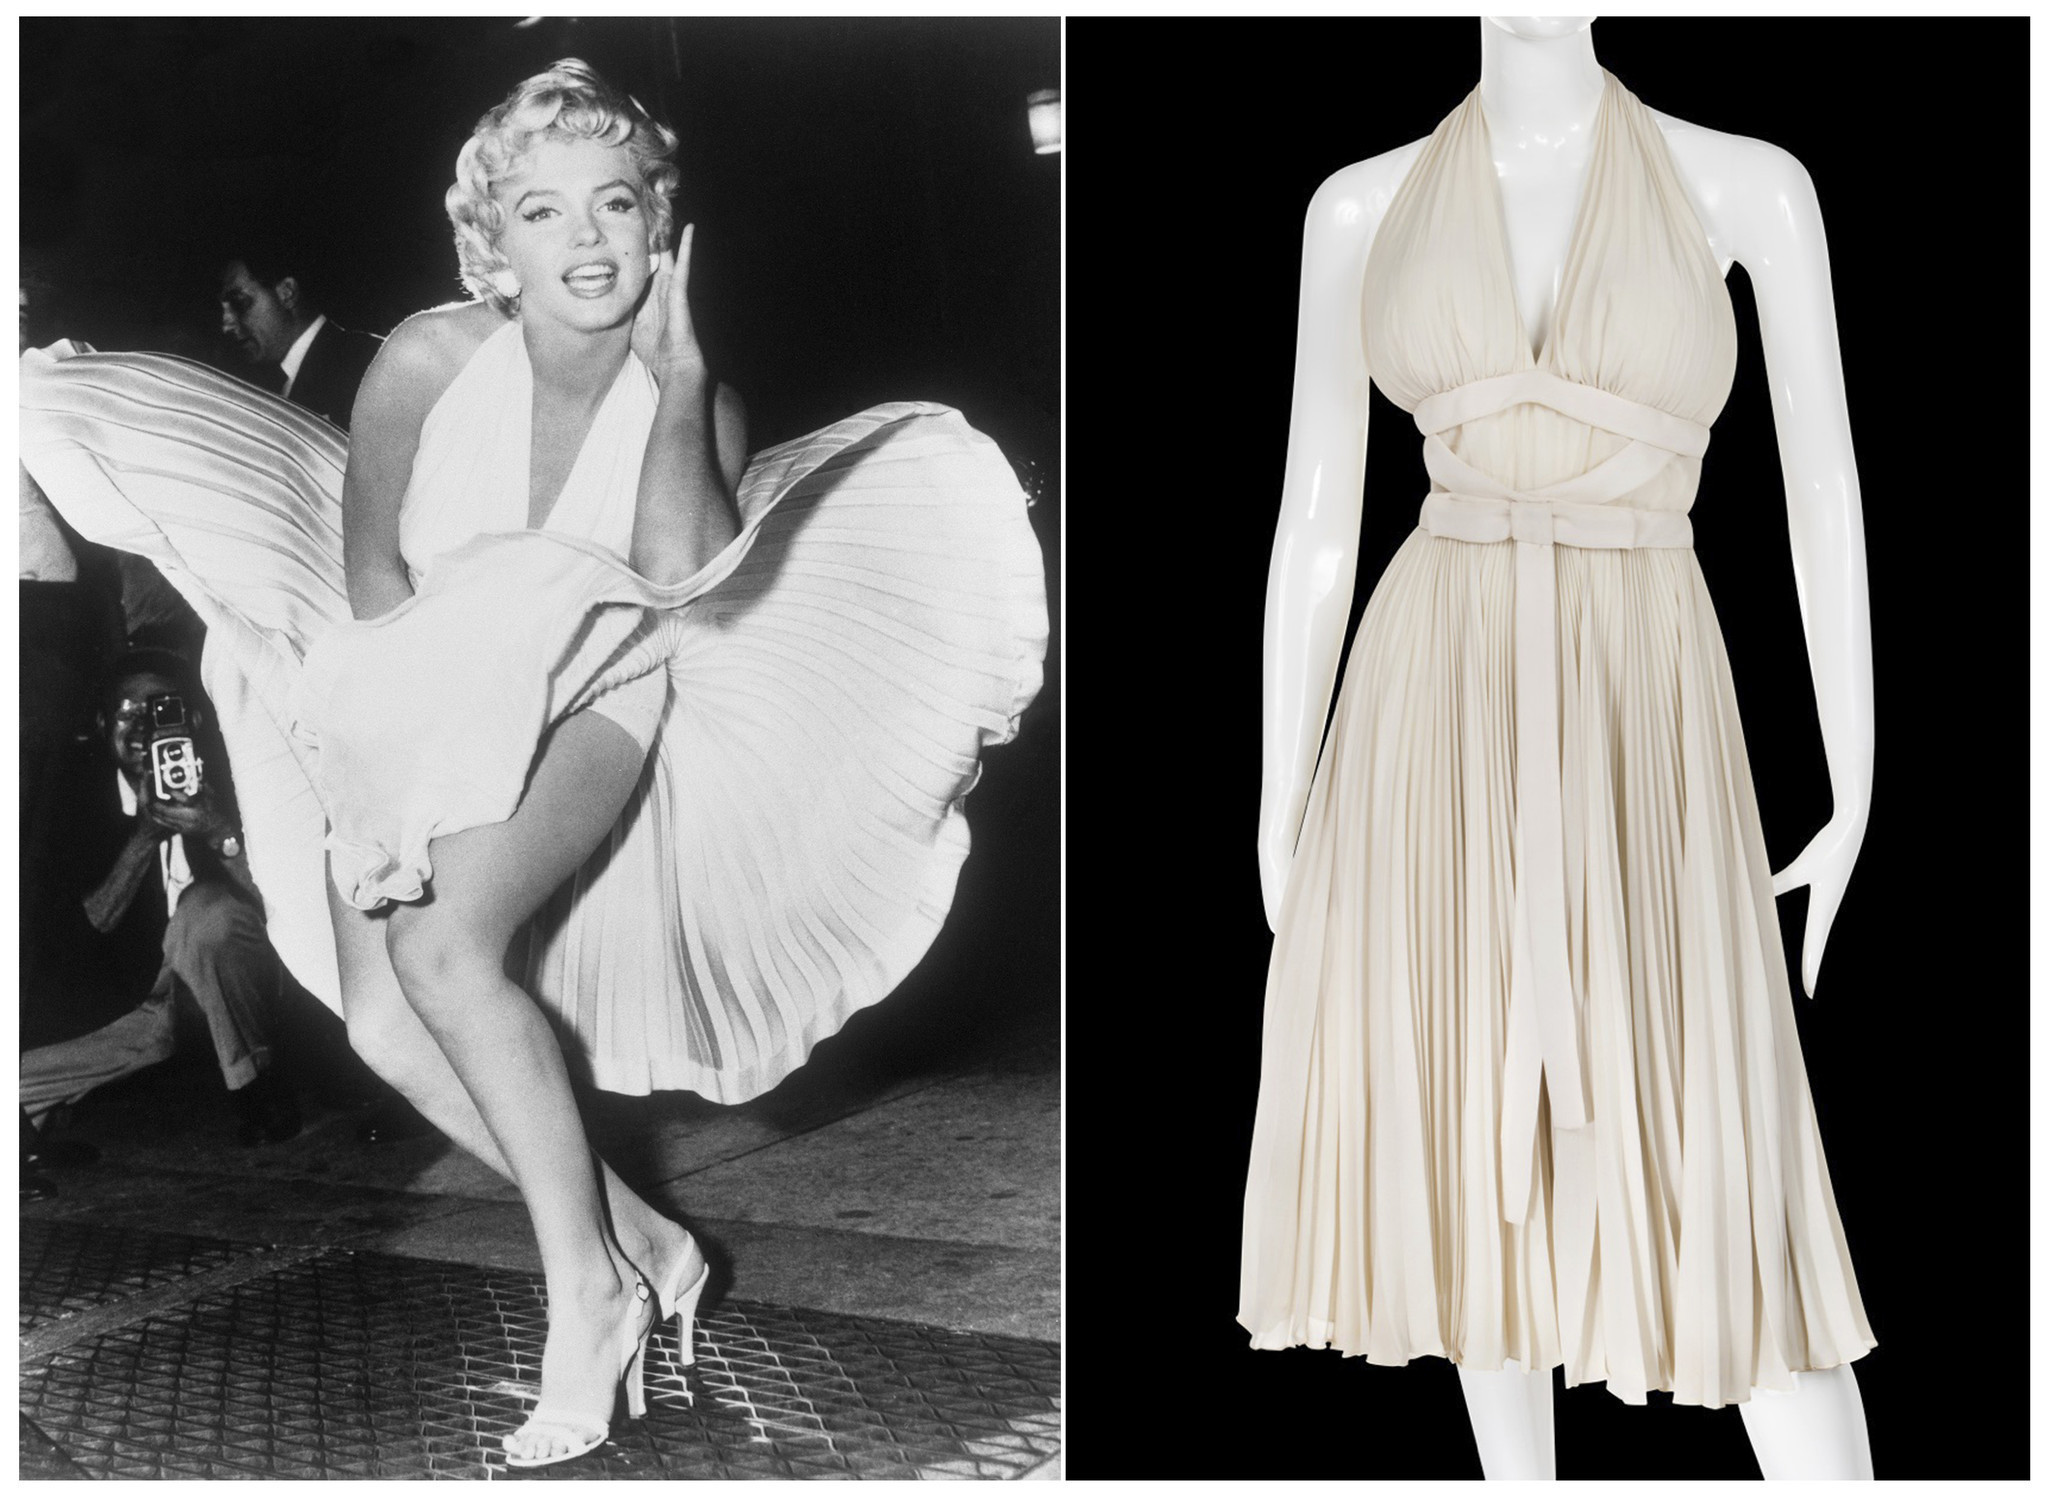 Iconic Marilyn Monroe Dress Personal Photos Going Up For Auction Chicago Tribune